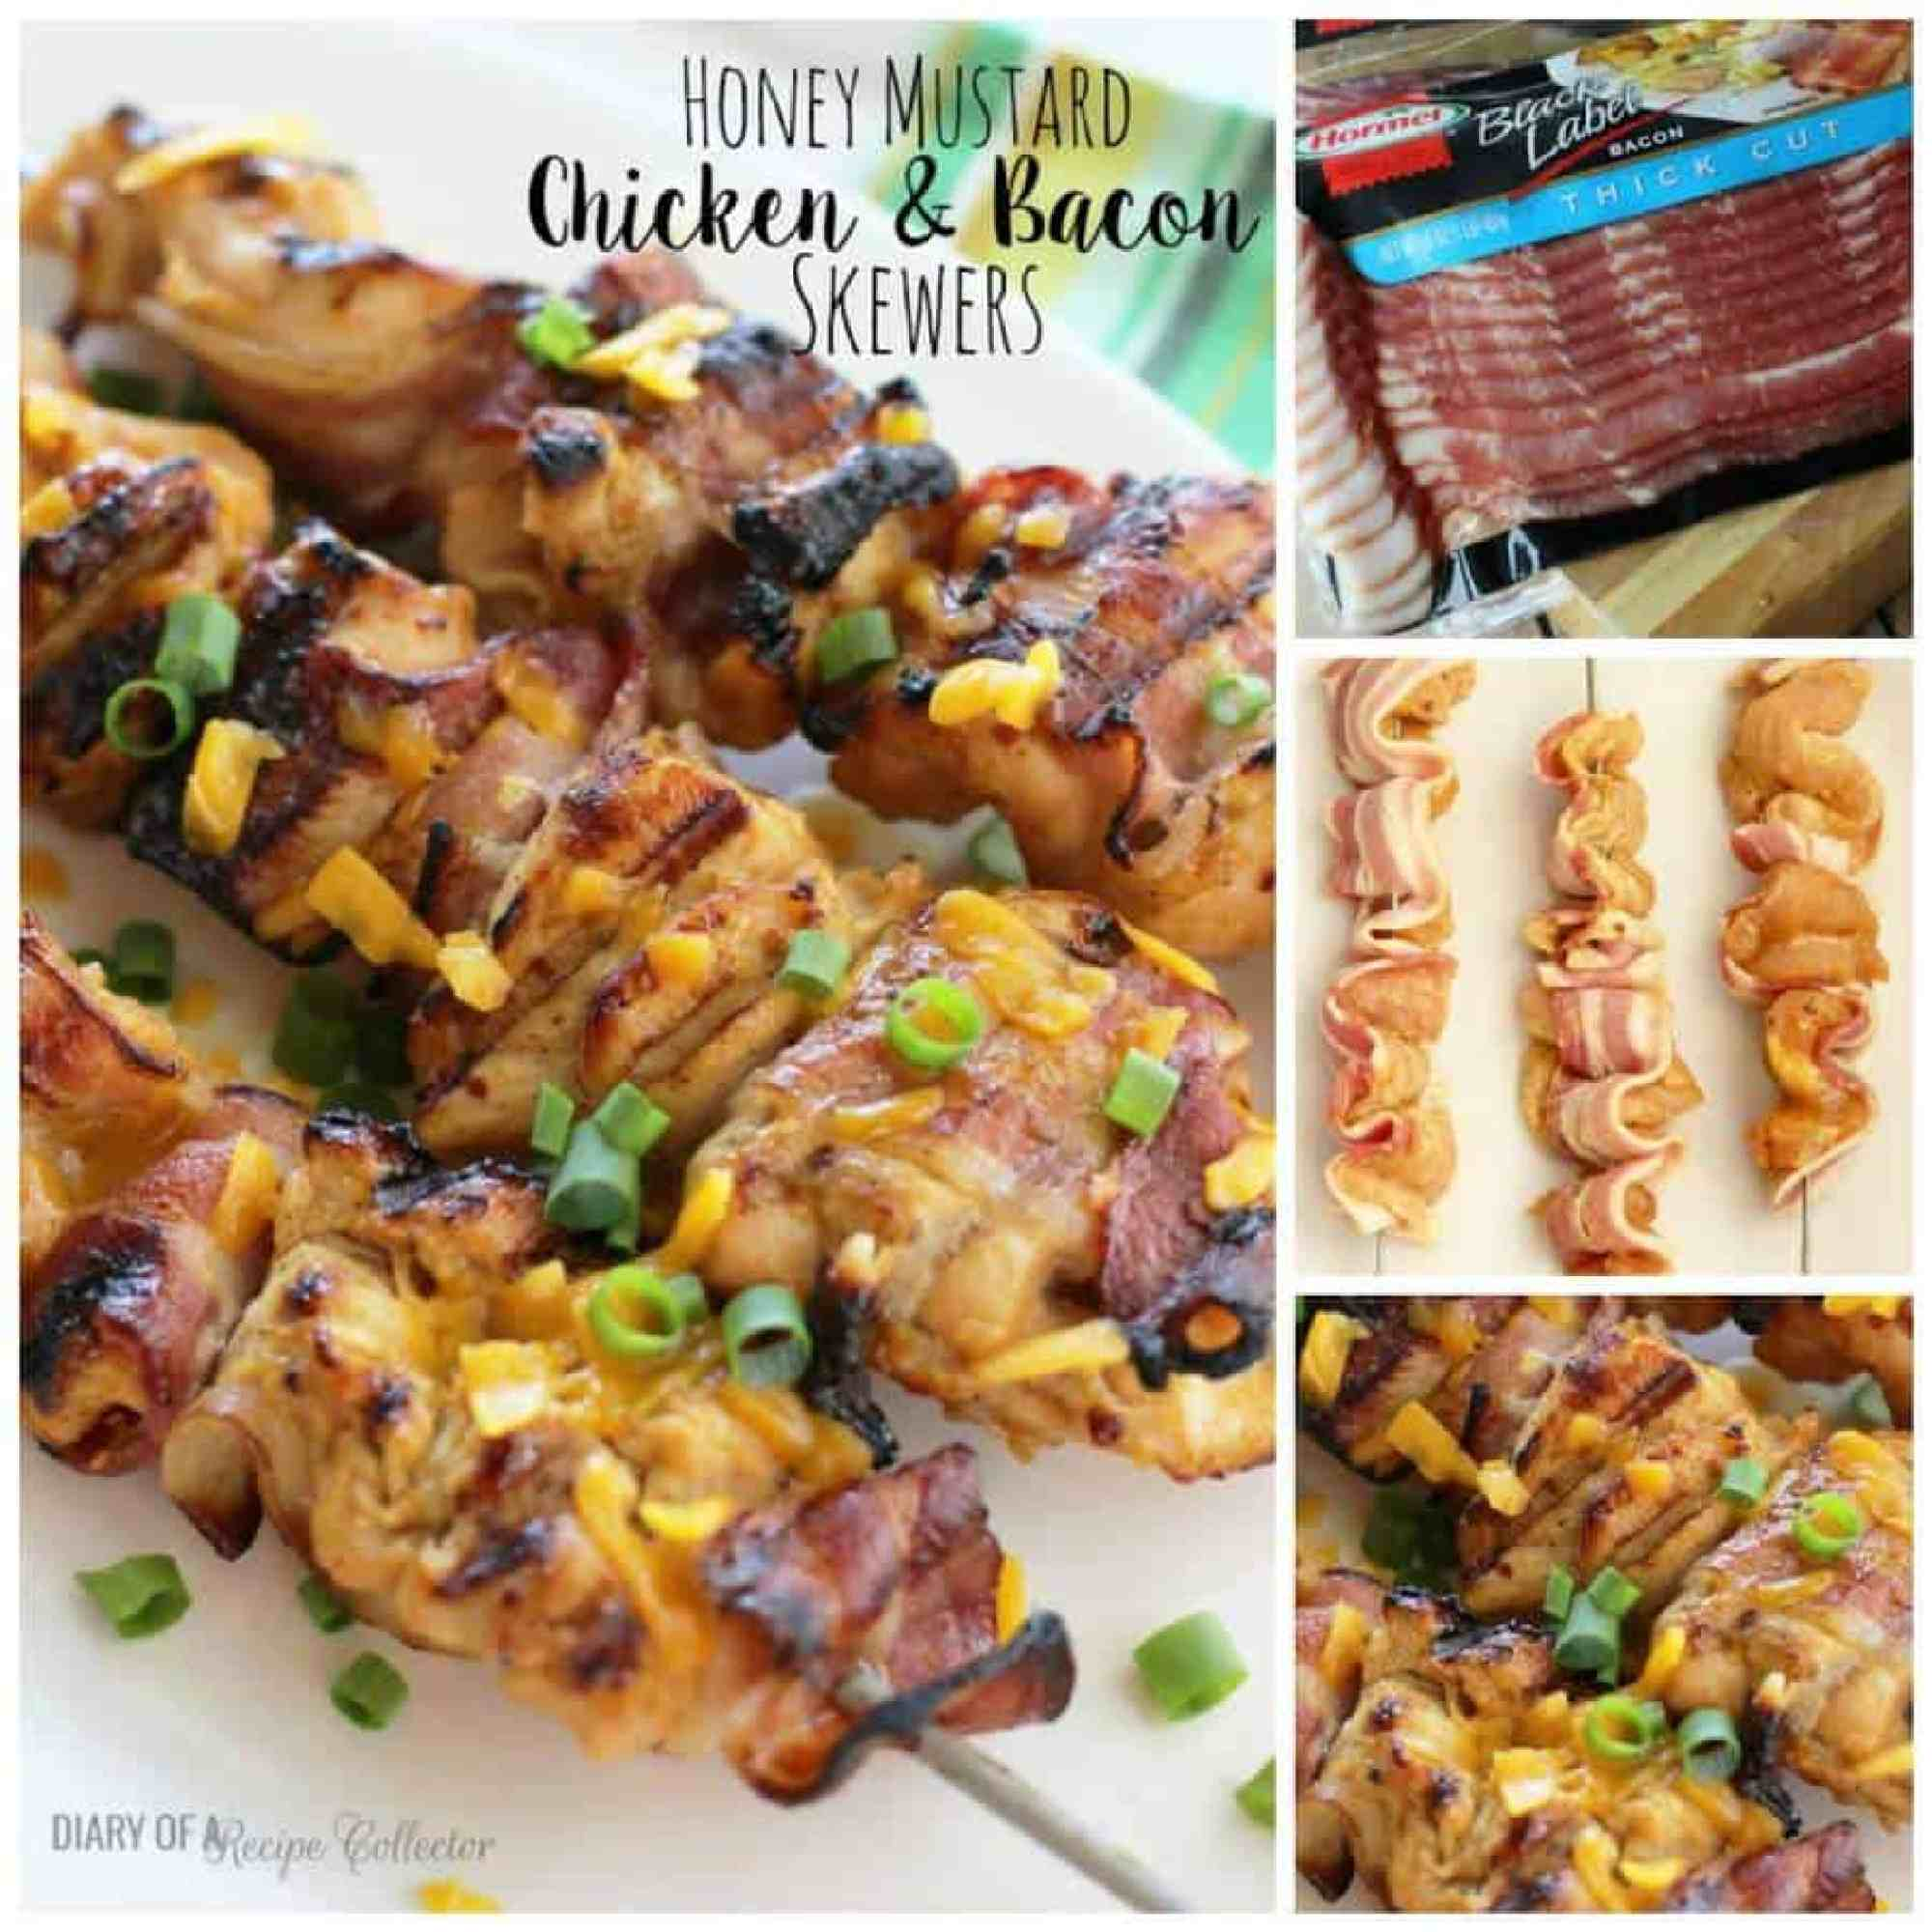 Honey Mustard Chicken and Bacon Skewers